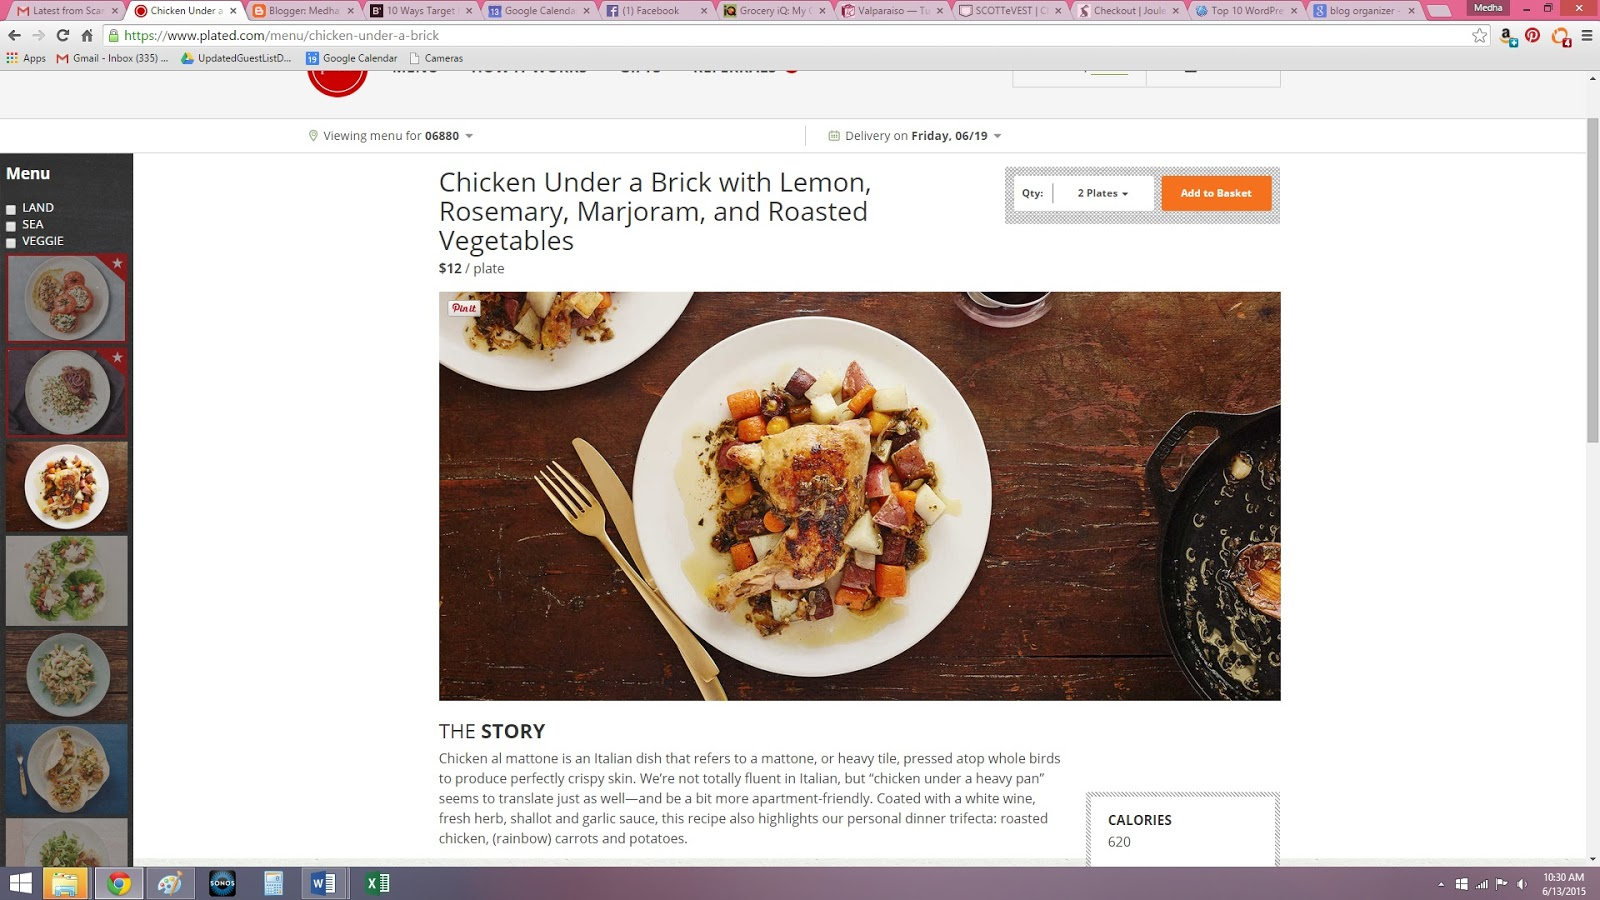 Blue apron vs plated - While Both Look Delicious And Are Organic And Locally Sourced Blue Apron Tends To Have Recipes I Ve Heard Of Or Tried